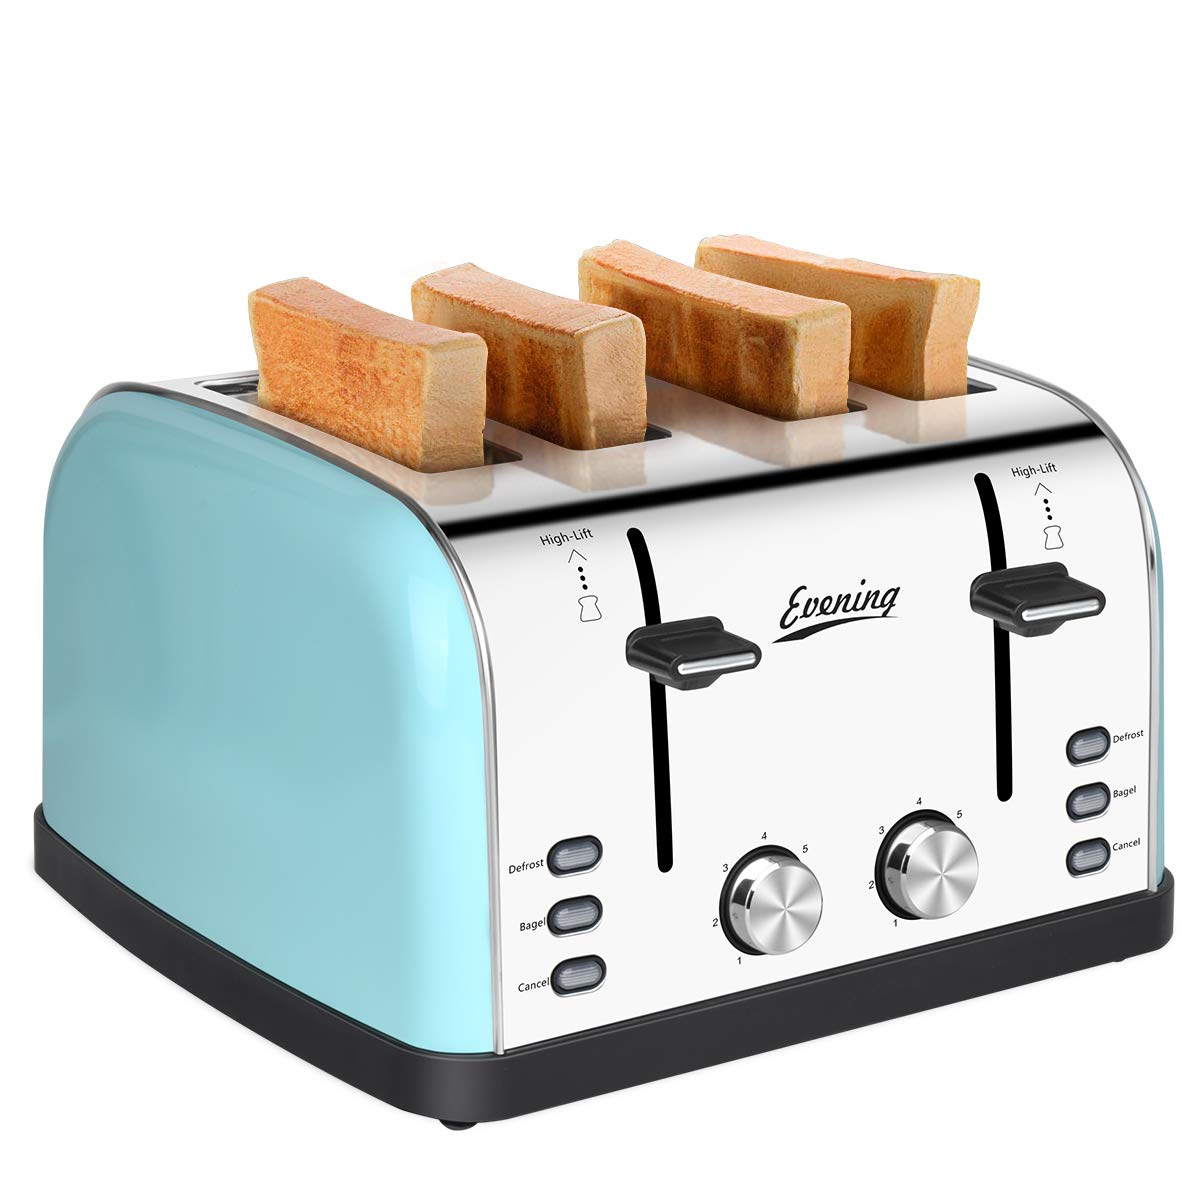 Toaster 4 Slice Toasters Best Rated Prime Wide Slot Stainless Steel Toaster Four Slice Bread Bagel Toaster Defrost/Reheat/Cancel Function, Extra Wide Slots, Removable Crumb Tray 7-Shade Setting